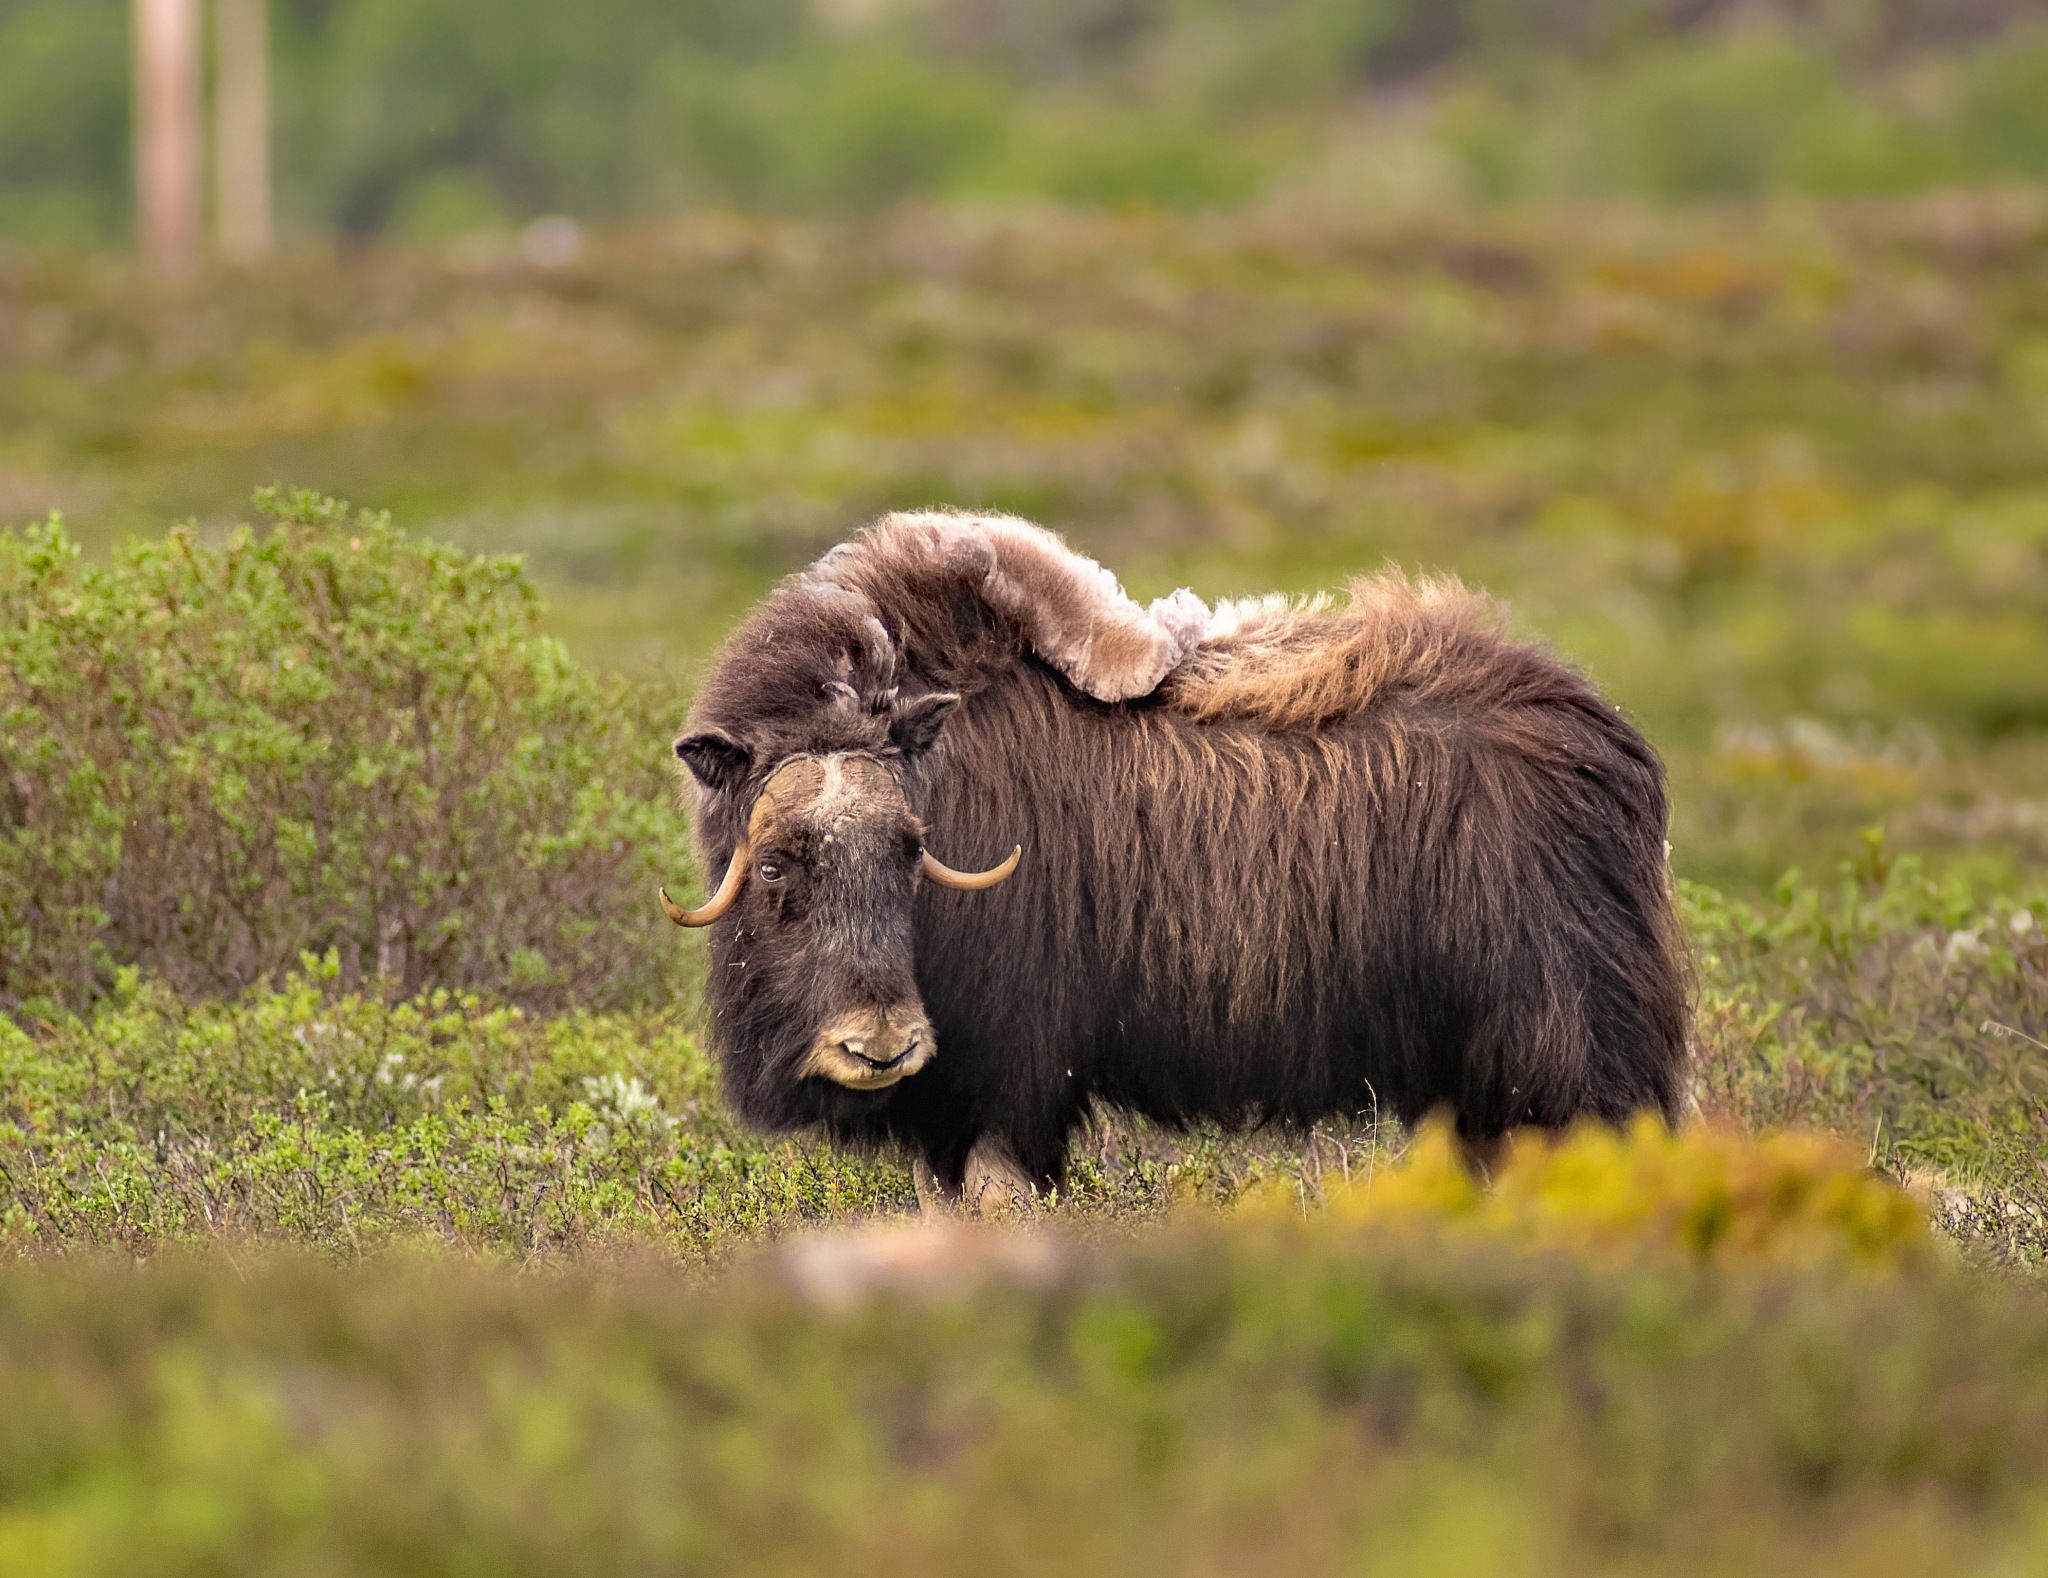 Musk Ox from Norway by ole nørholm